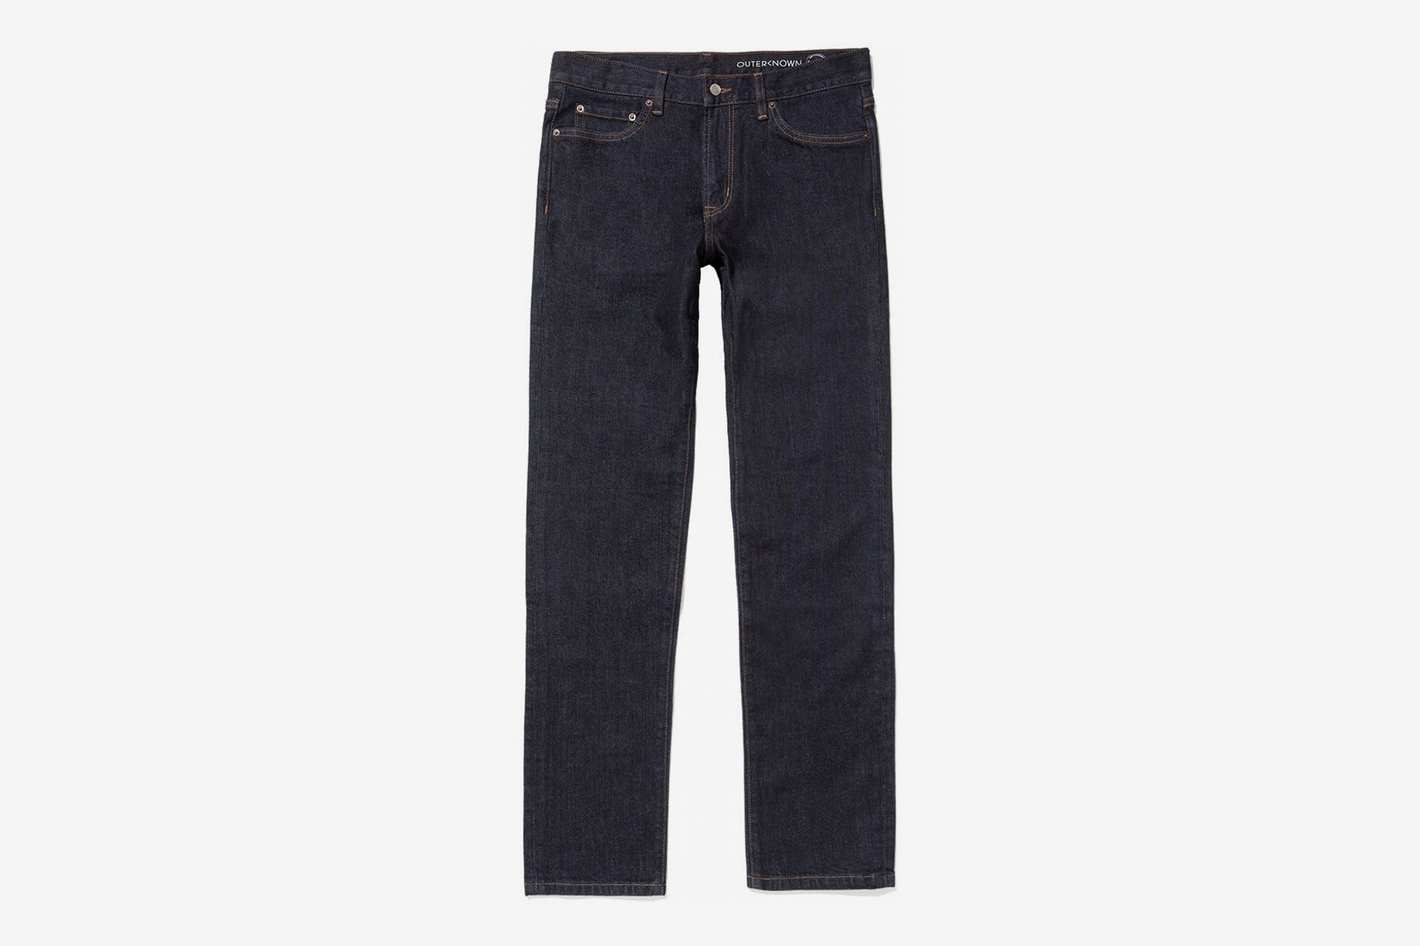 Outerknown Assembly slim fit jeans